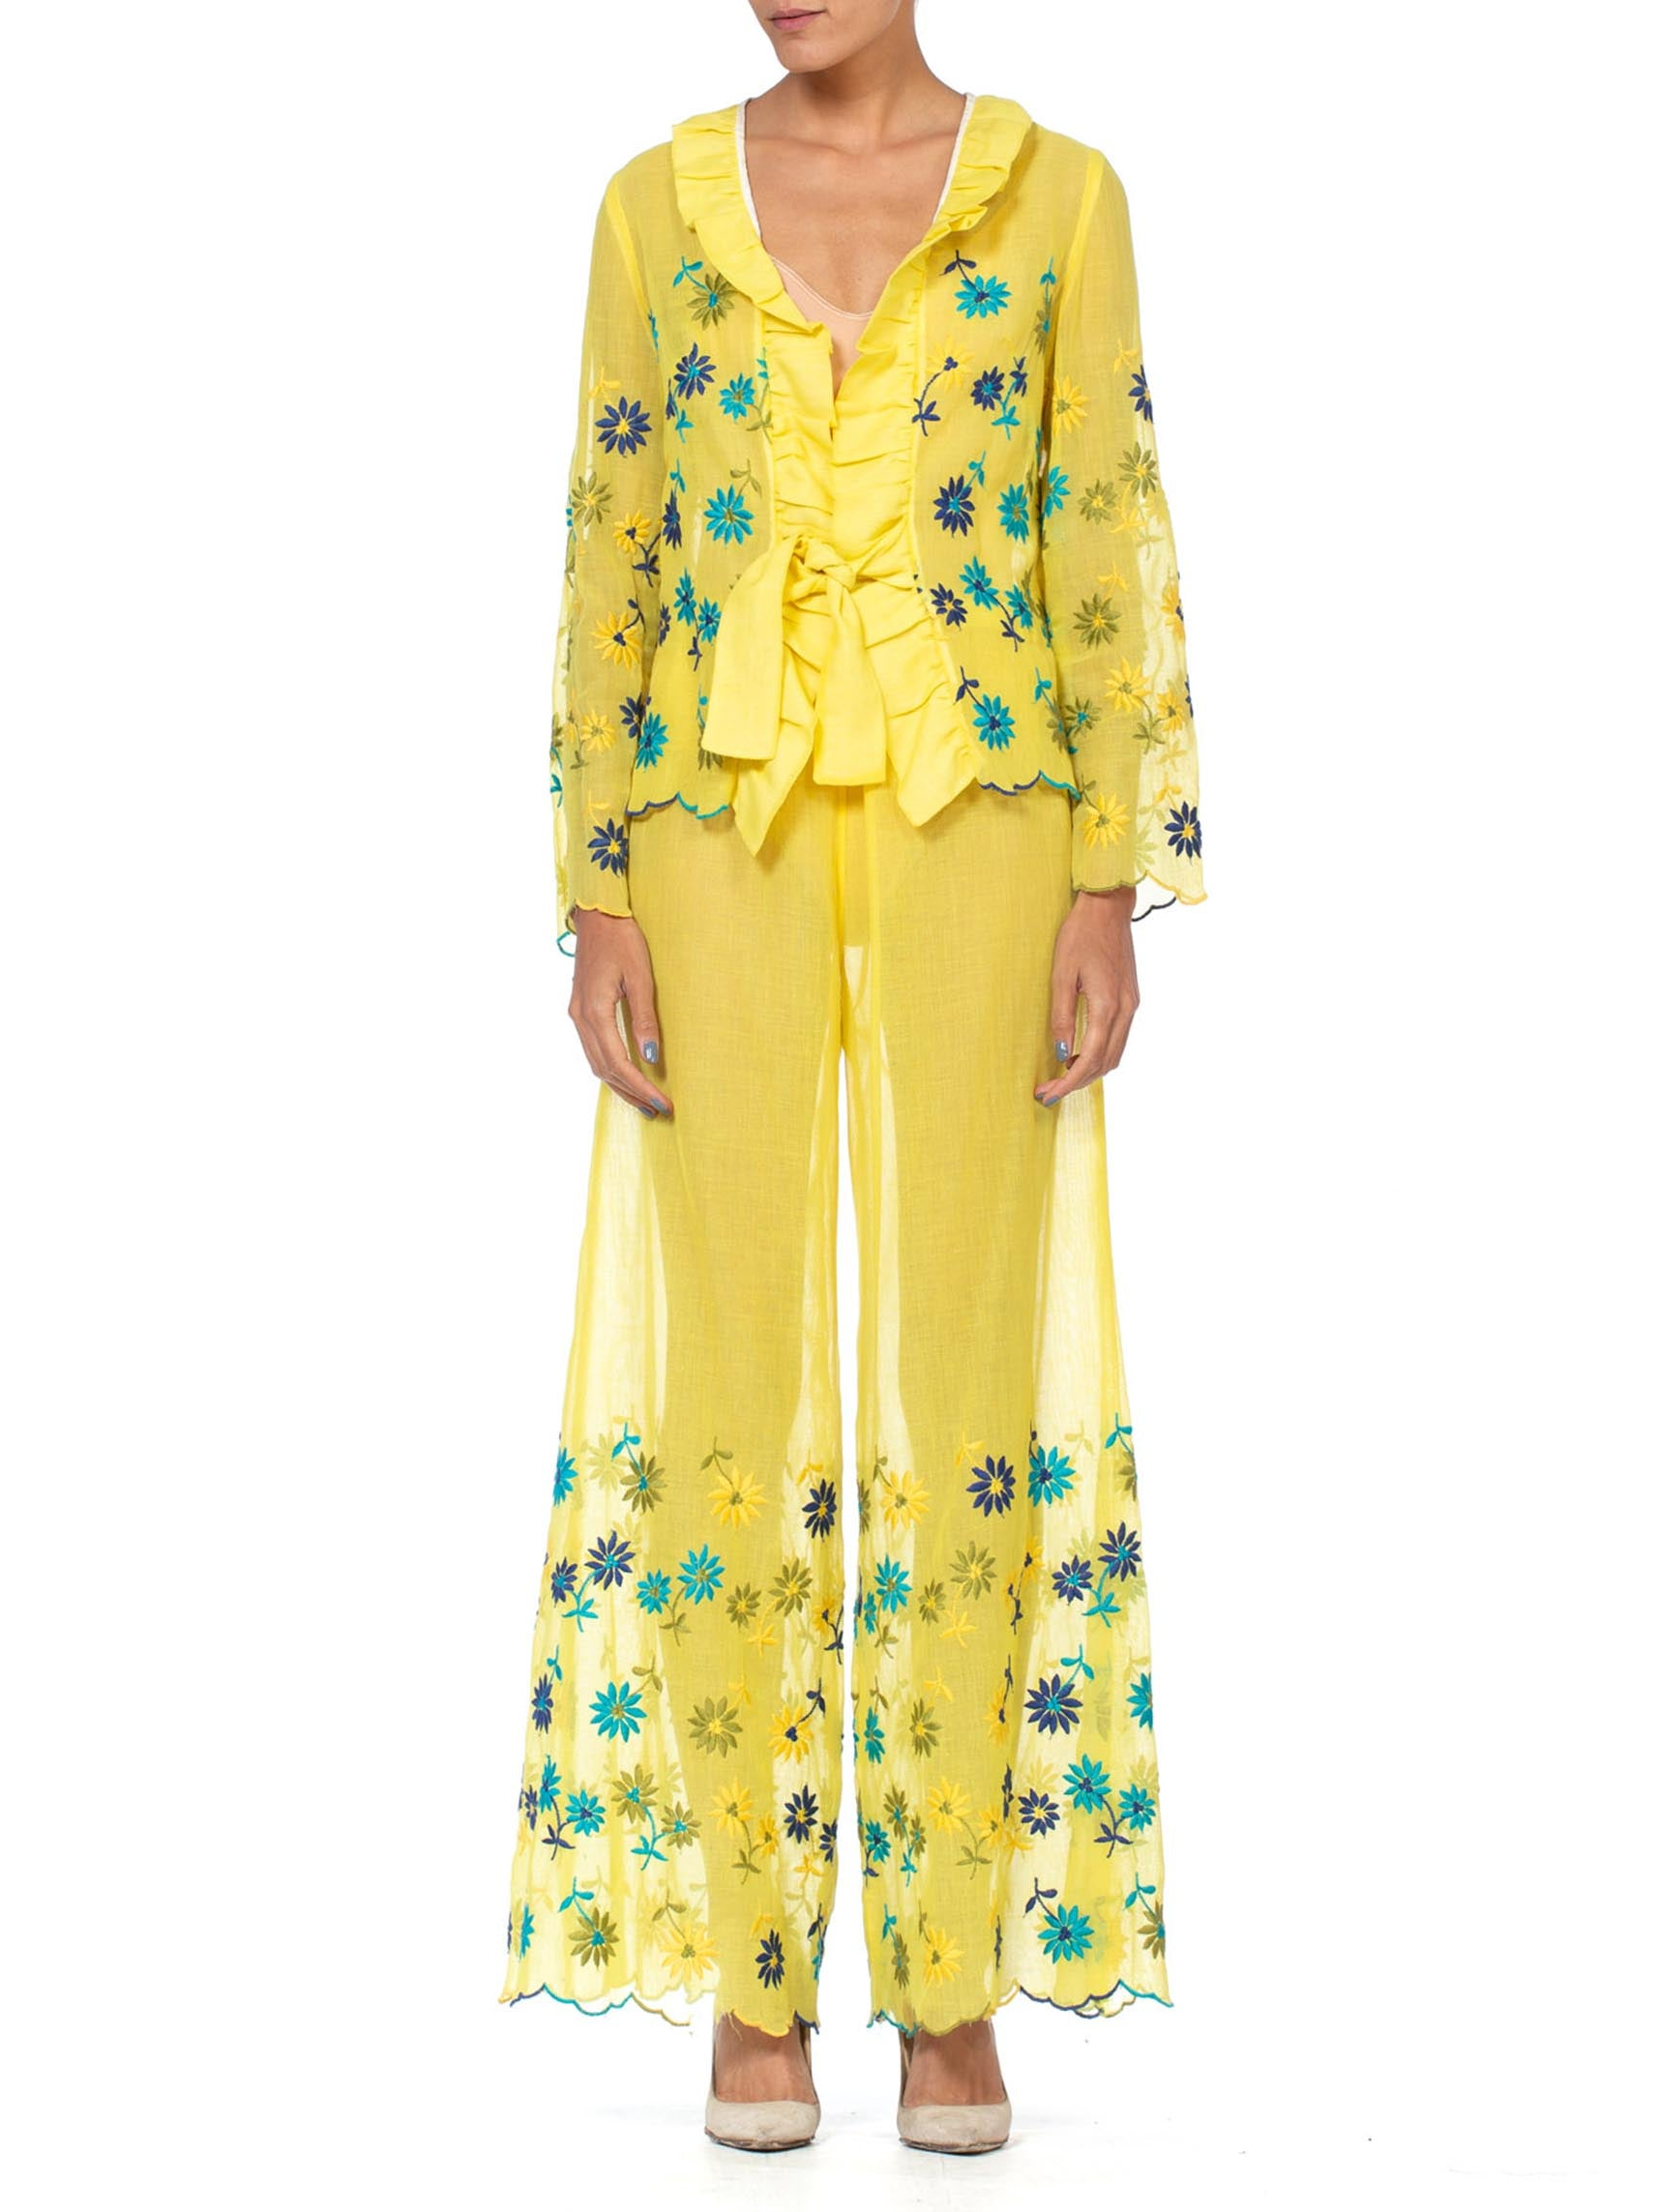 1960S Yellow Cotton Daisy Embroidered Top & Pants  Ensemble